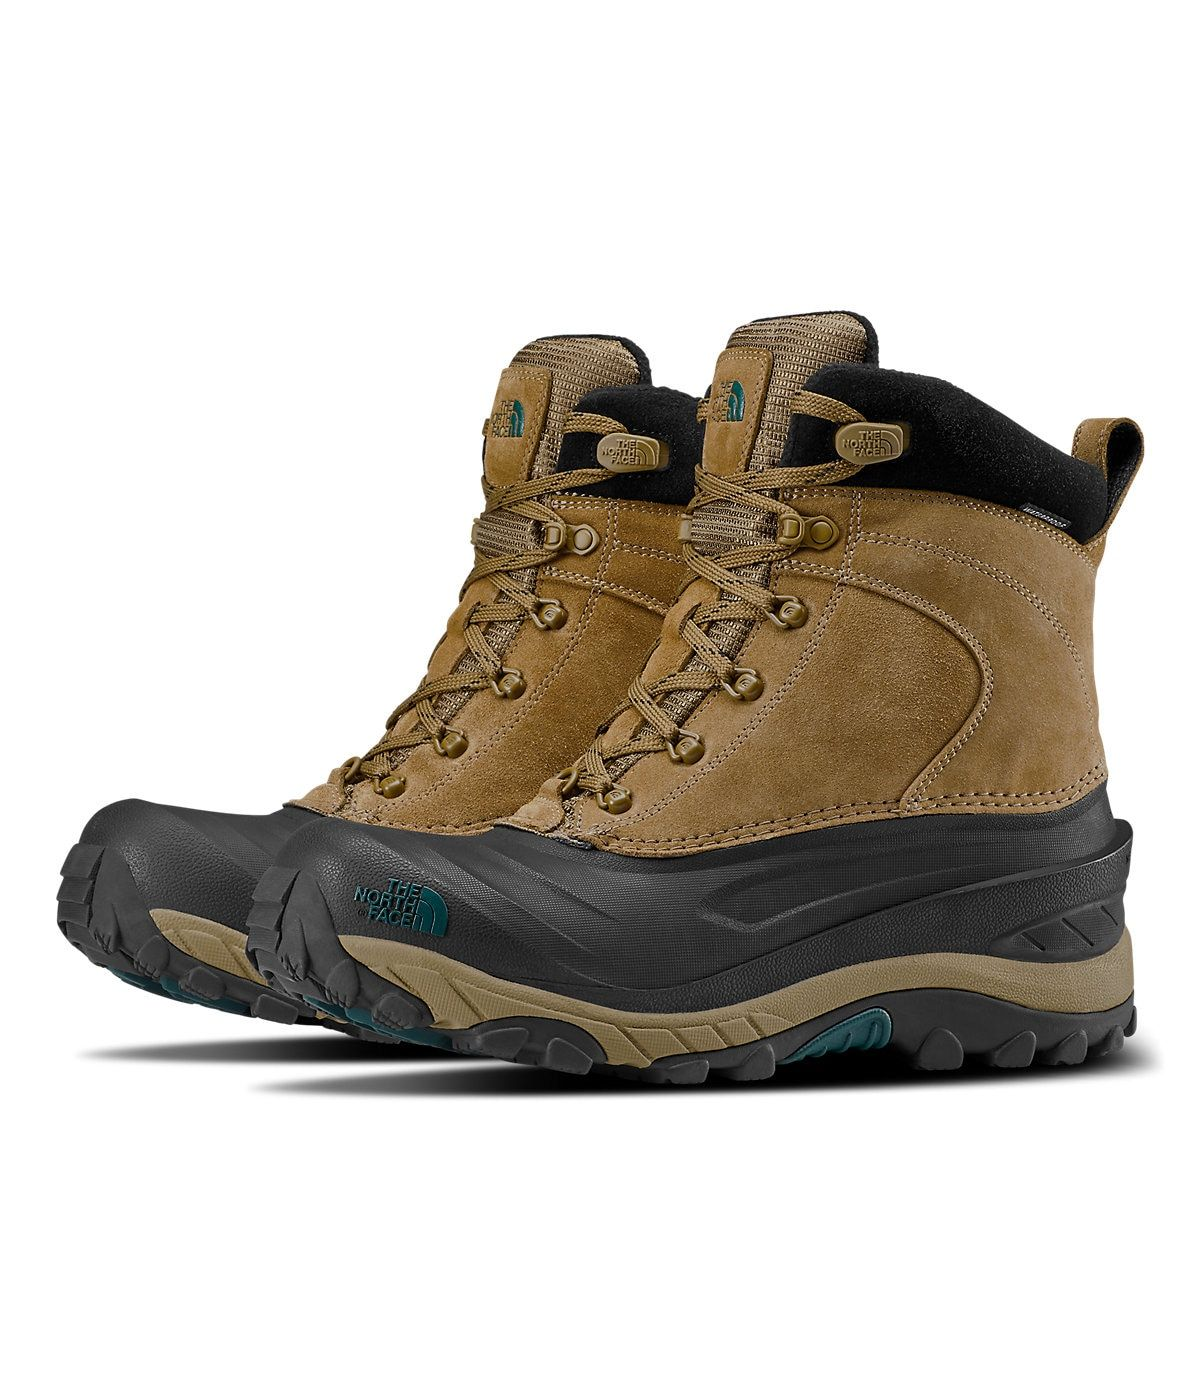 THE NORTH FACE Mens M Chilkat Iii High